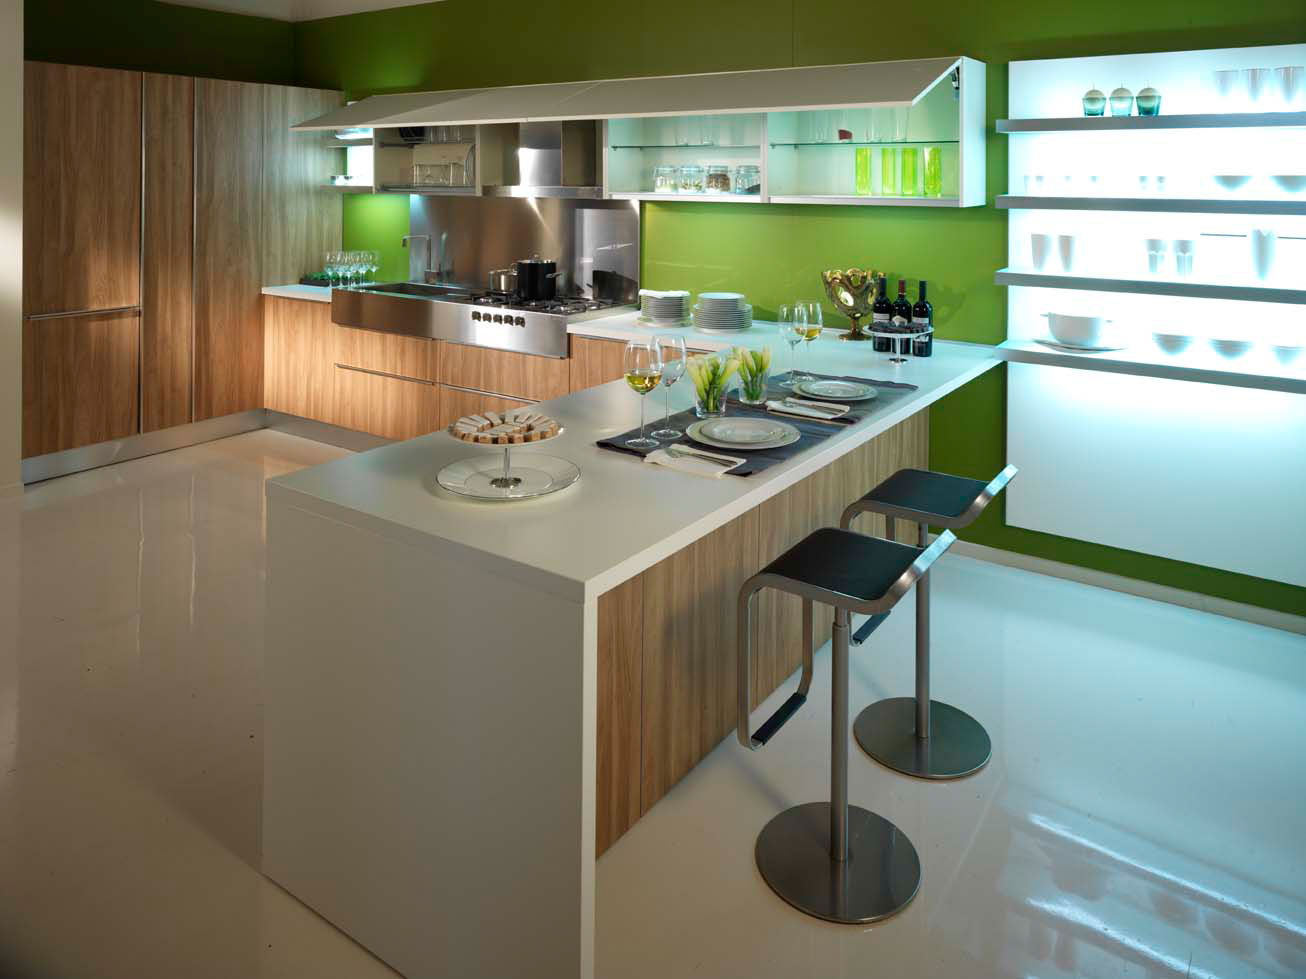 Cuisine pas cher 27 photo de cuisine moderne design for Cuisines contemporaines design